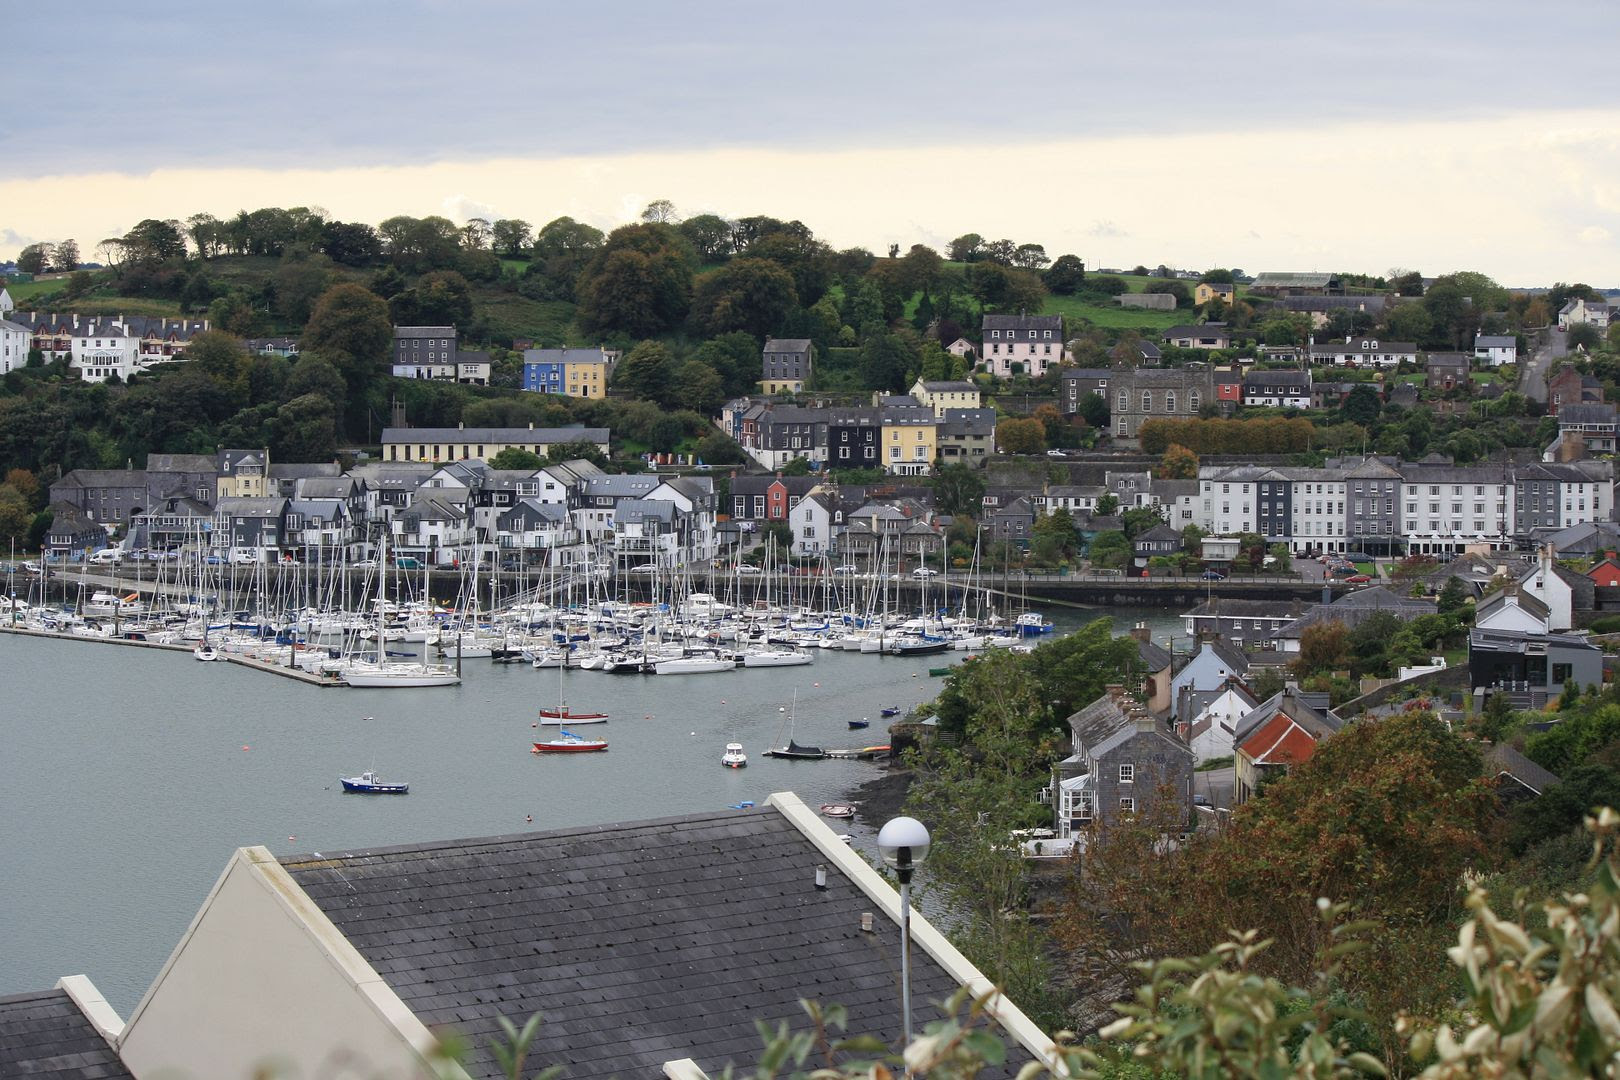 Kinsale, Ireland photo IMG_3650_zps9jesxf8q.jpg